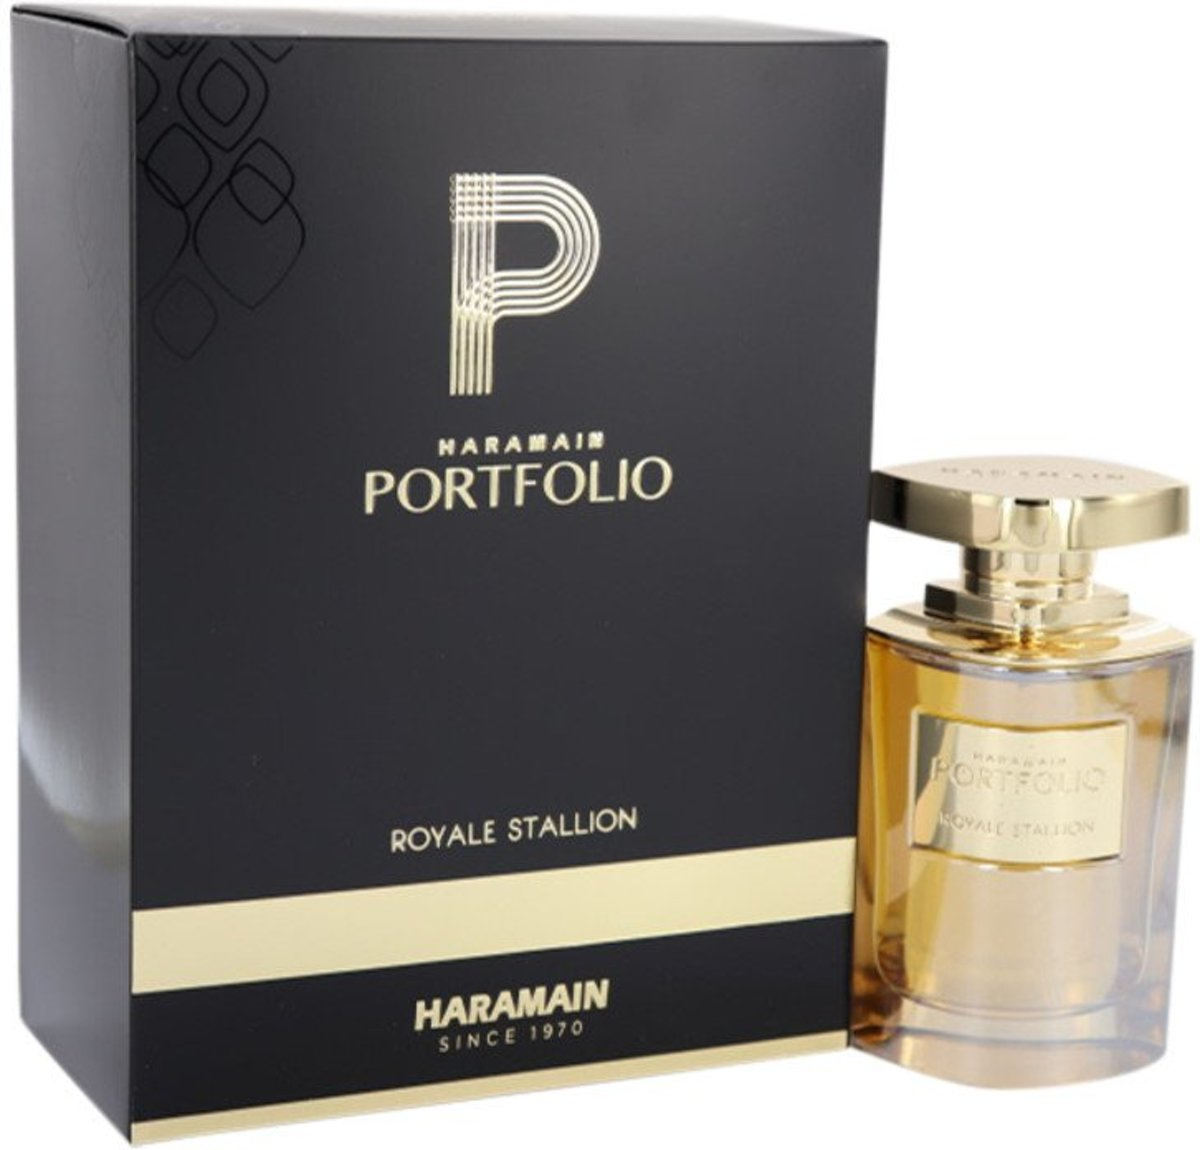 Al Haramain Portfolio Royale Stallion - Eau de parfum spray - 75 ml